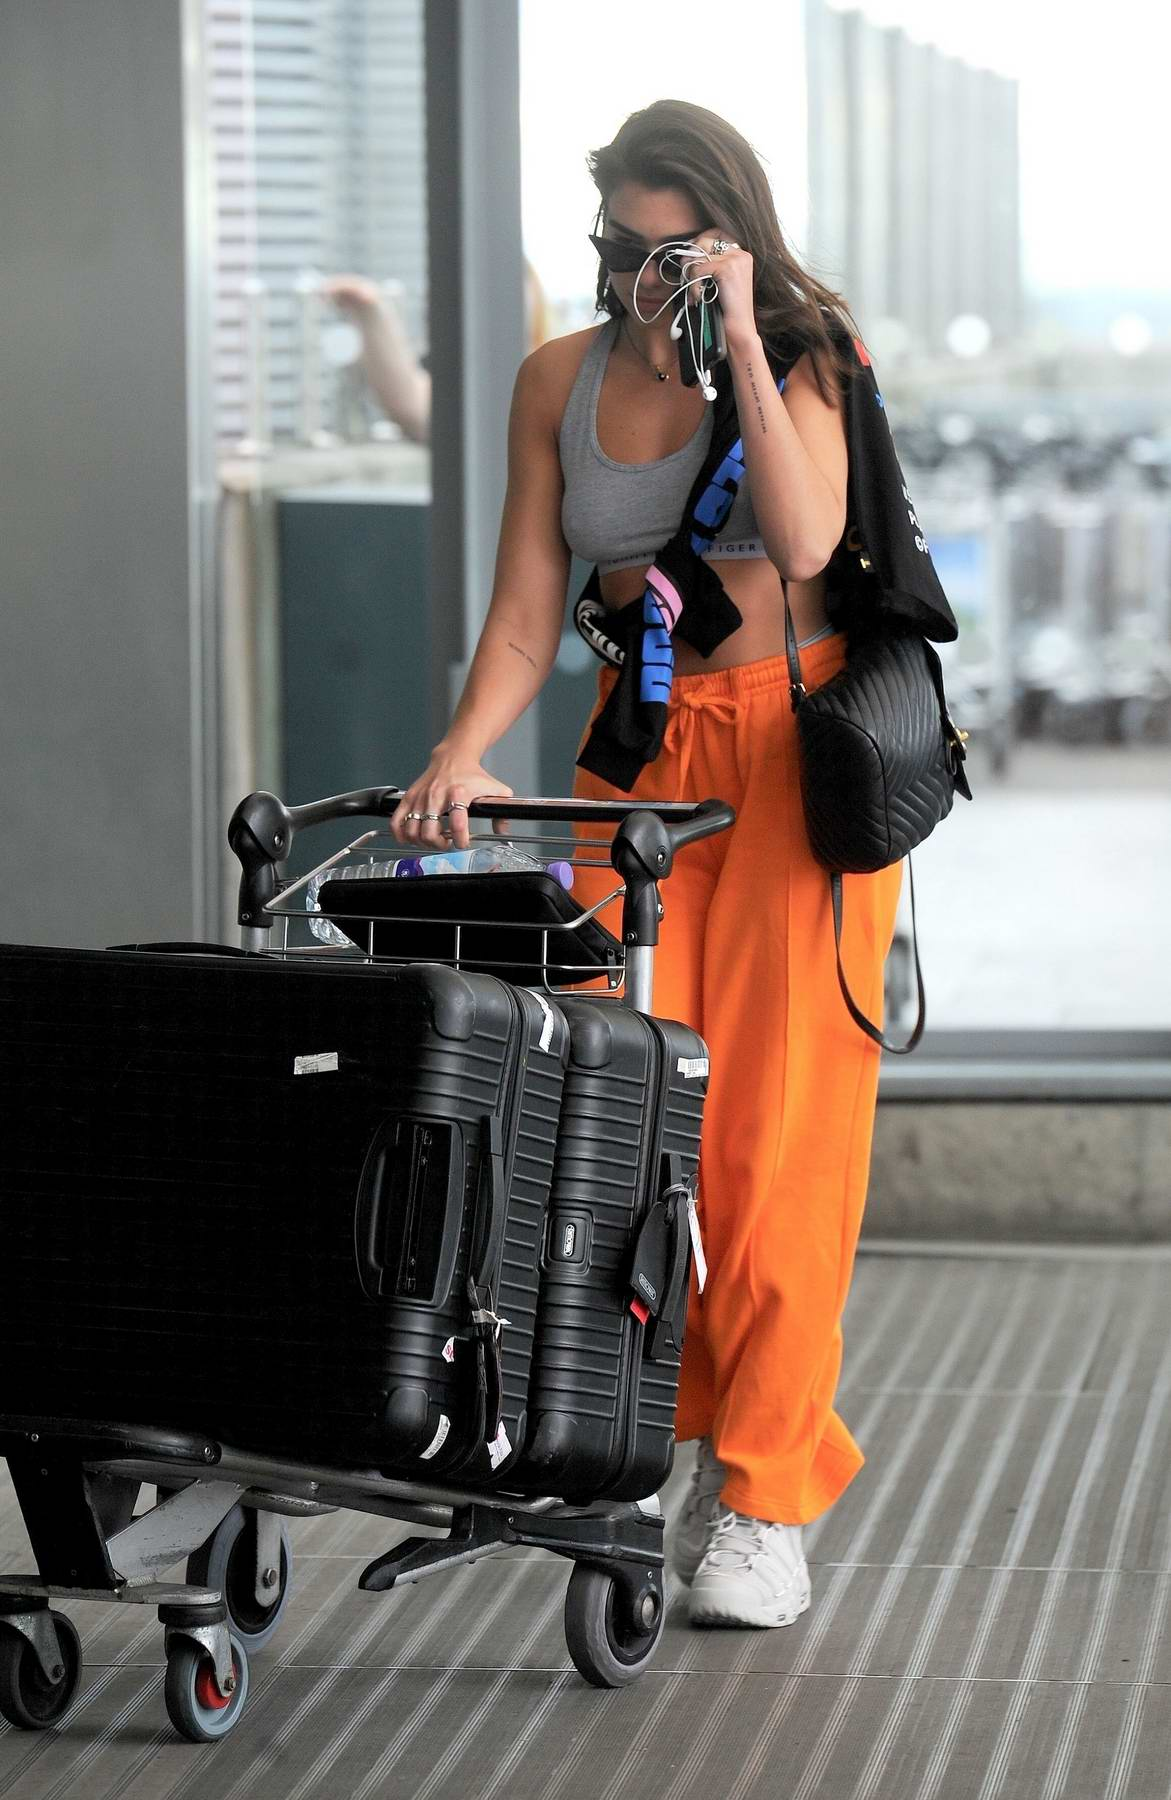 Dua Lipa Seen At Heathrow Airport Heading Off For Her Upcoming Tour Starting Off In Jakarta